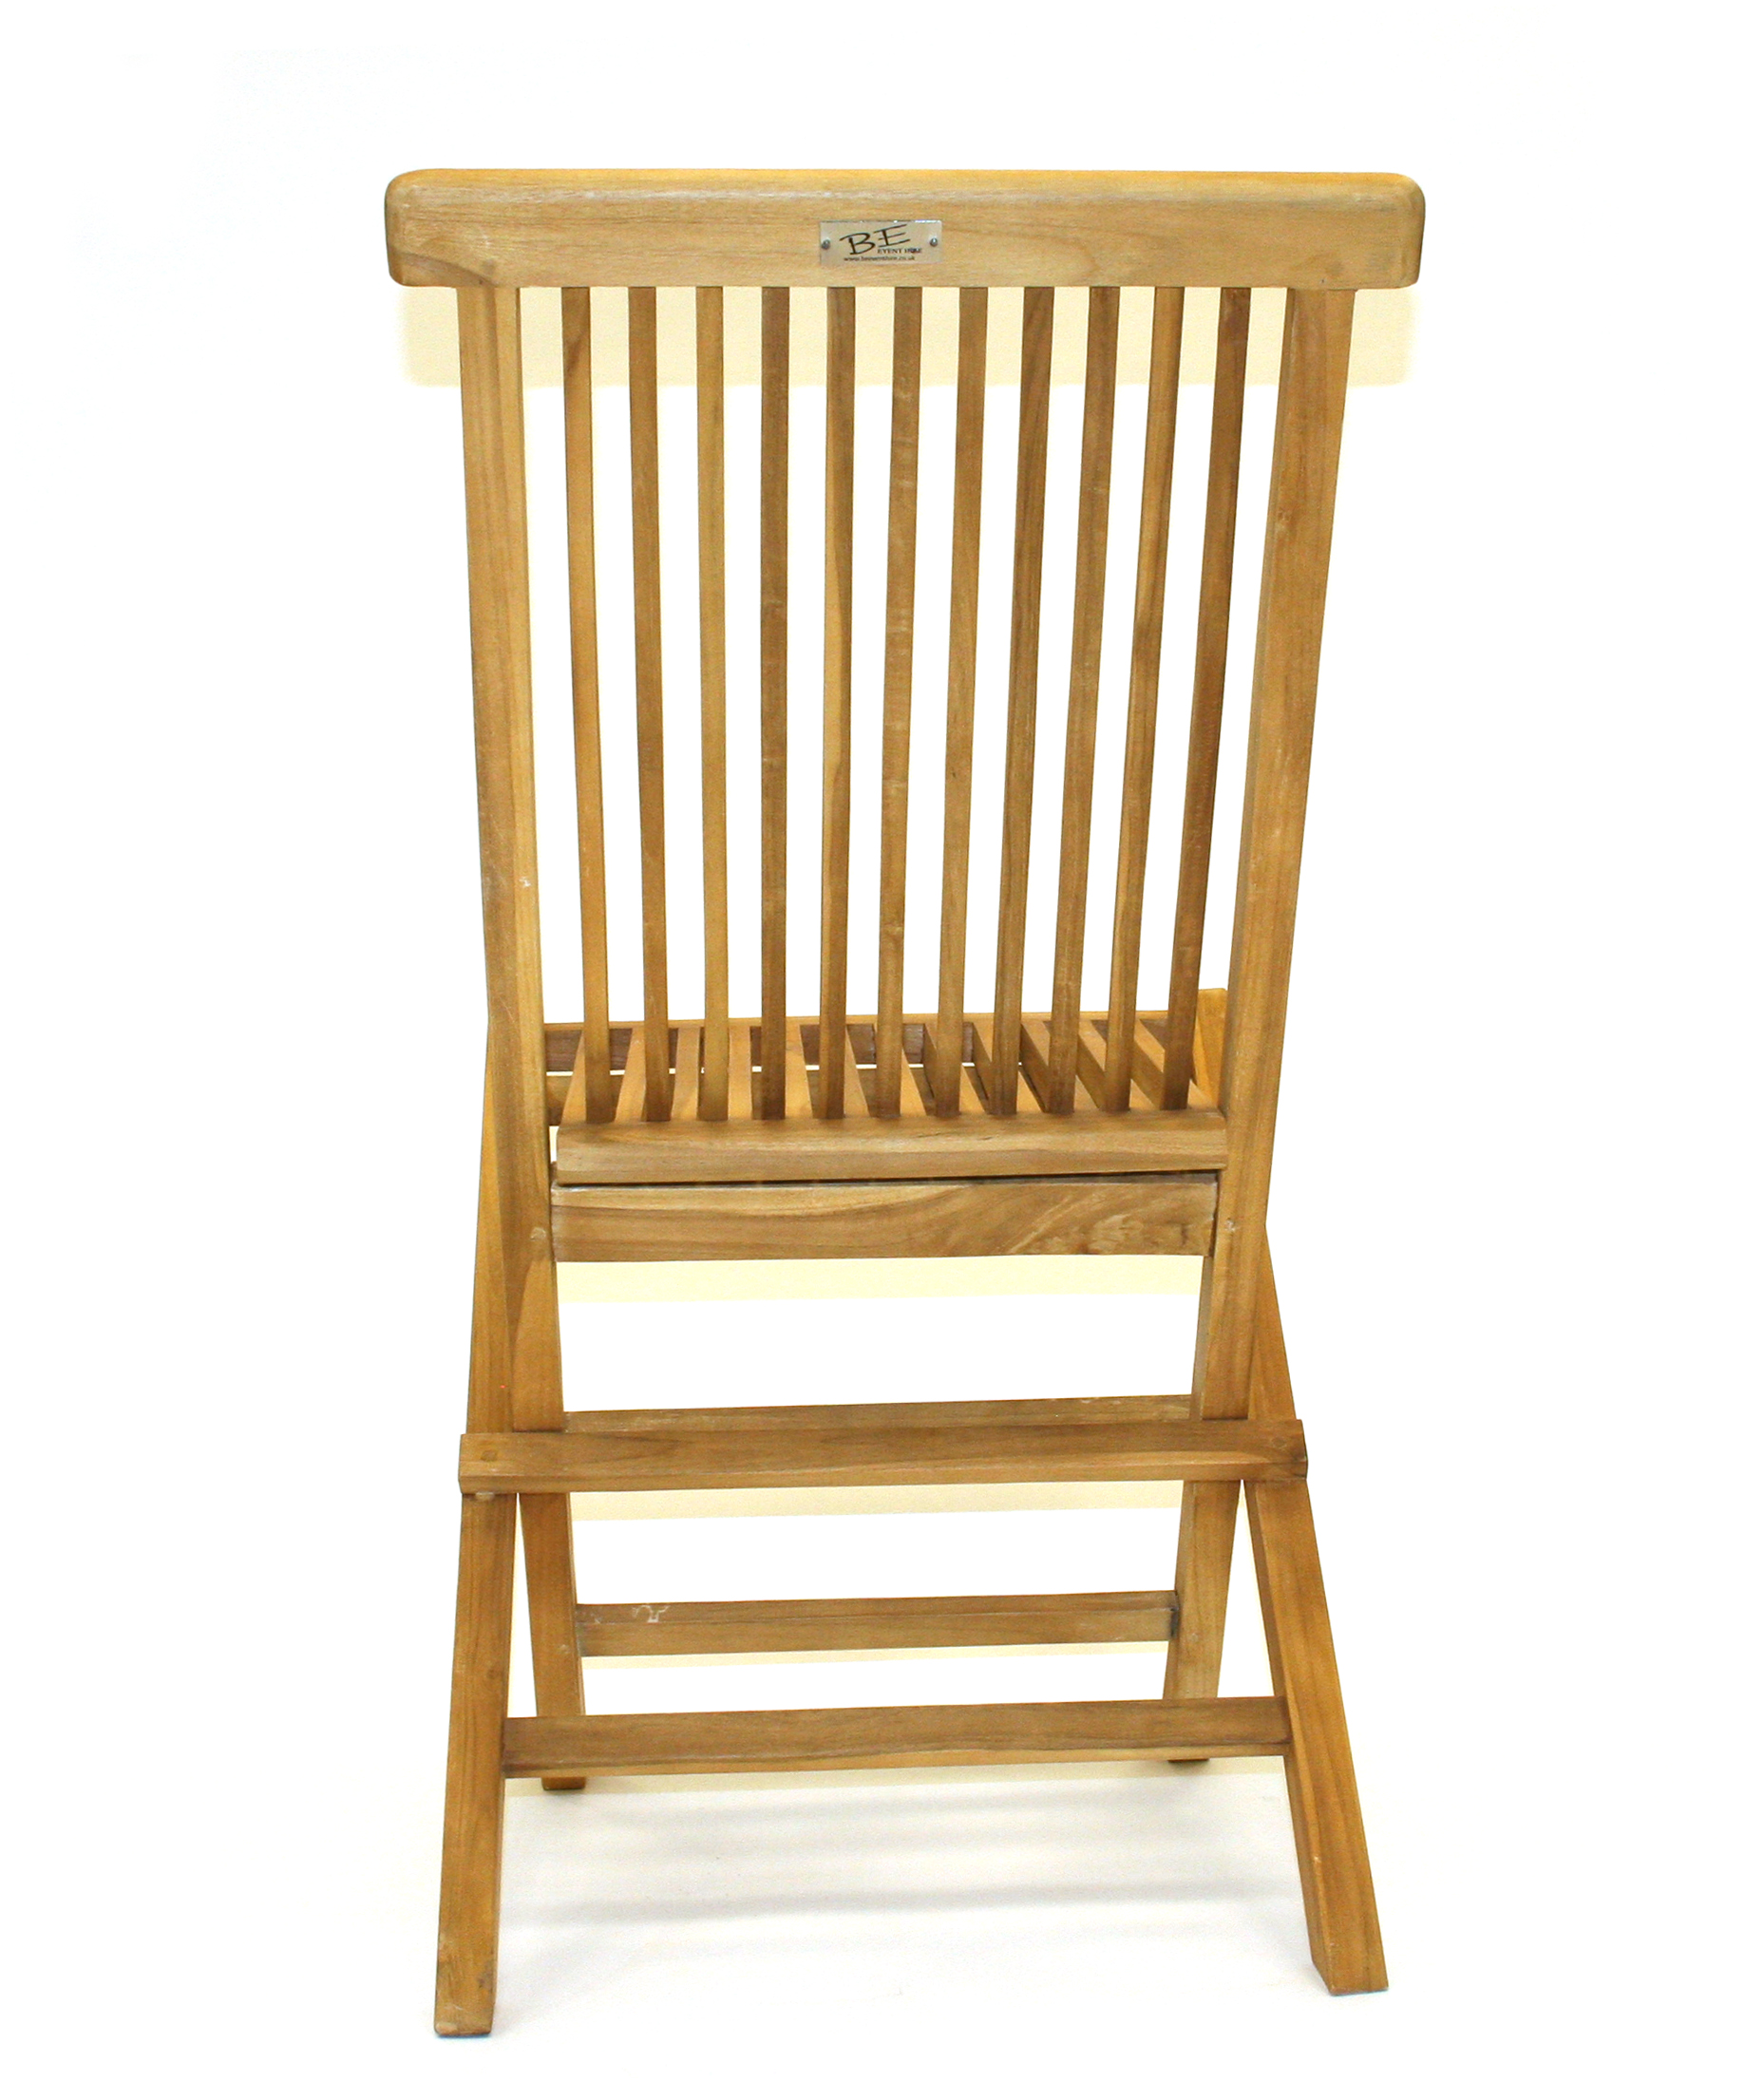 Teak Garden Chair Hire Cafes Events Exhibitions Be